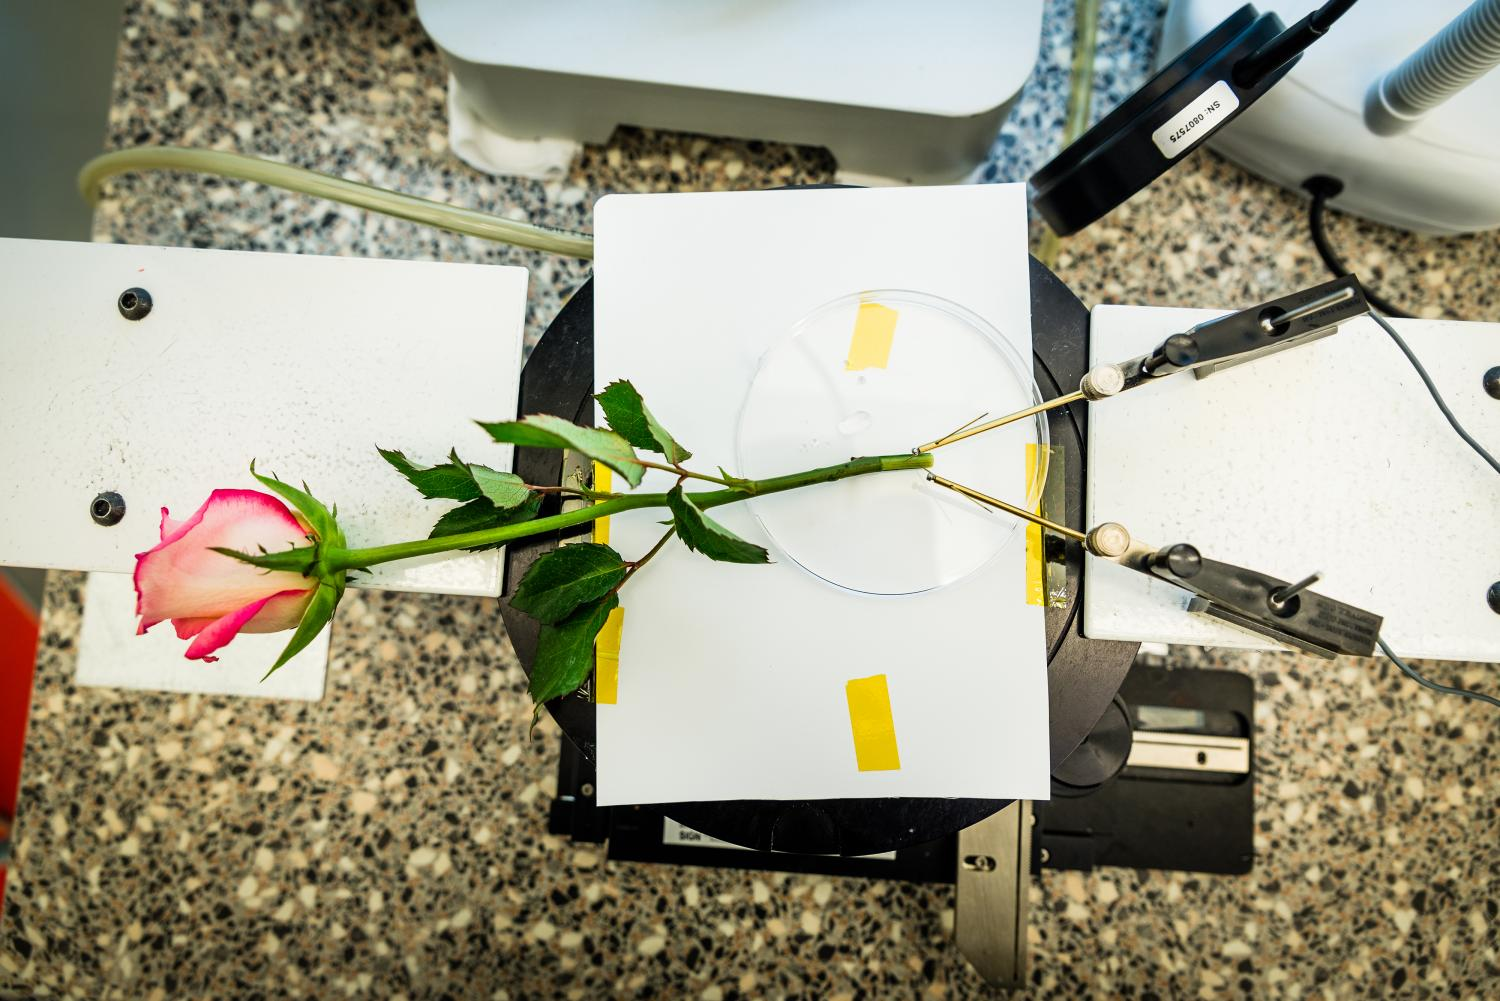 A Rose To Store Energy In Vivo Polymerization And Manufacturing Of Led Flashlight Use Supercapacitor Circuitschematic From Laboratory Organic Electronic Linkping University Credit Thor Balkhed